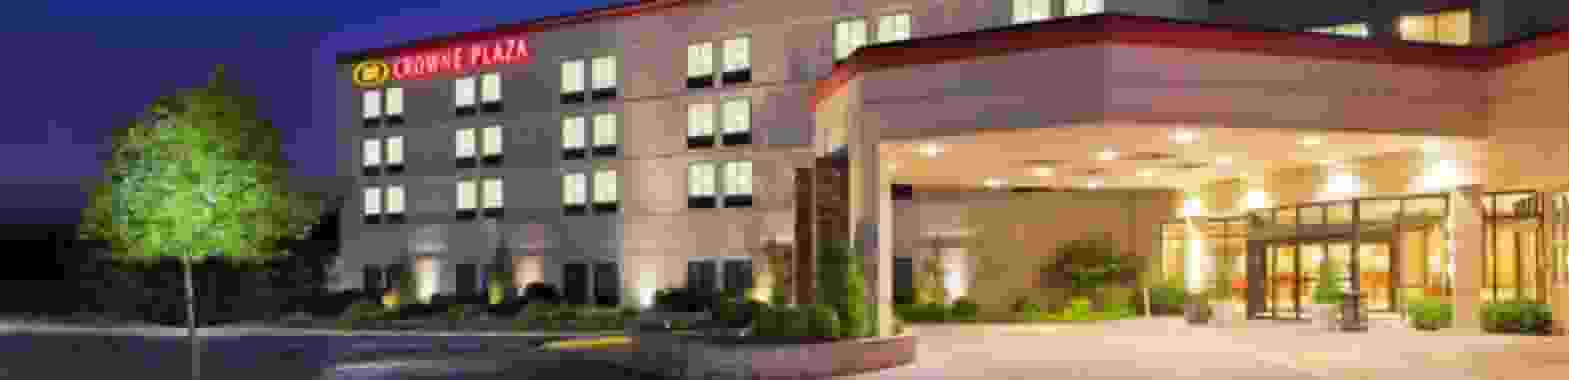 Crowne Plaza Dulles Airport Hotel Herndon Virginia